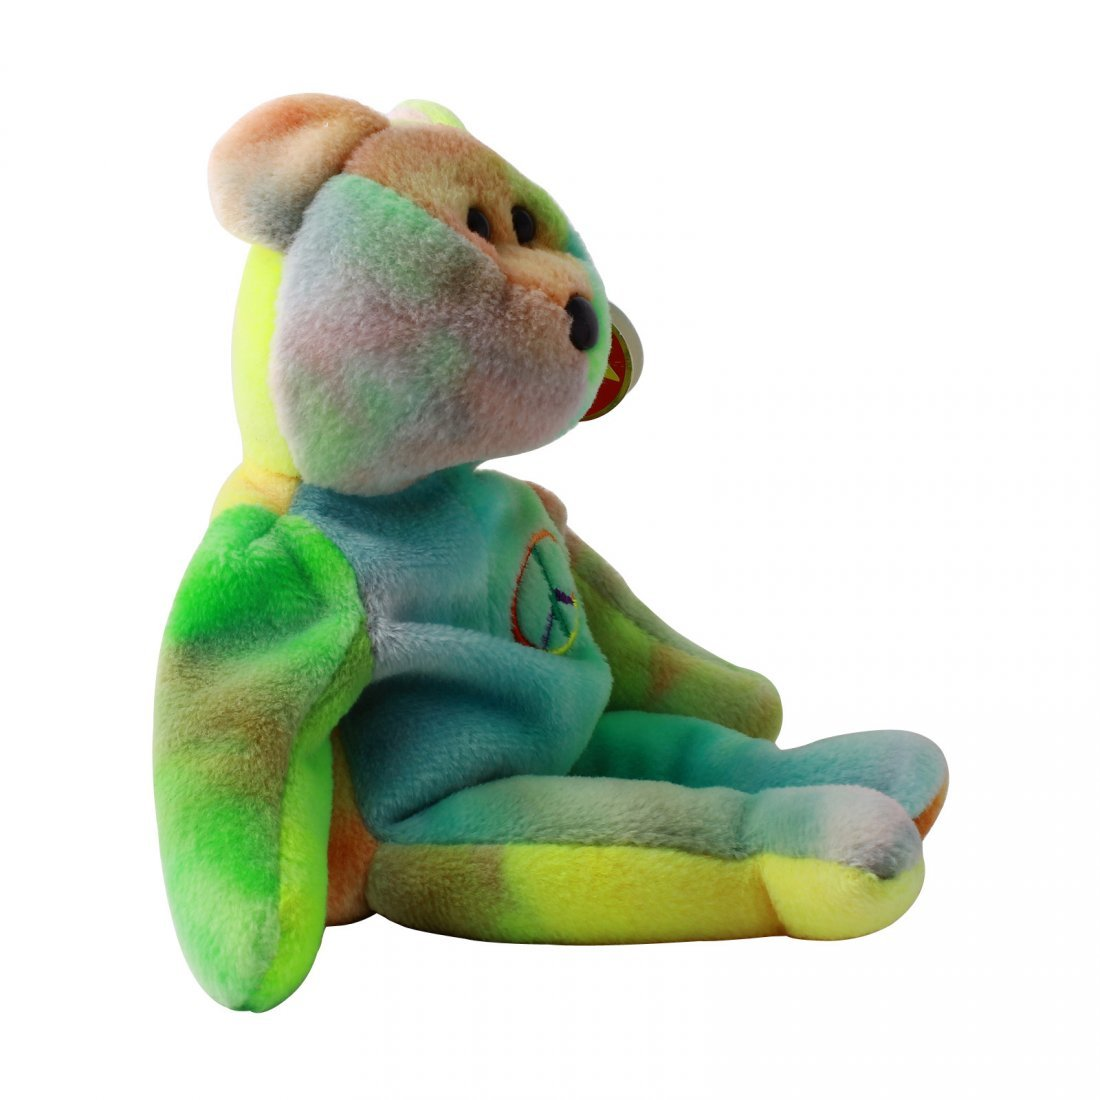 Discontinued TY Beanie Baby Multi-Colored PEACE BEAR: - 2